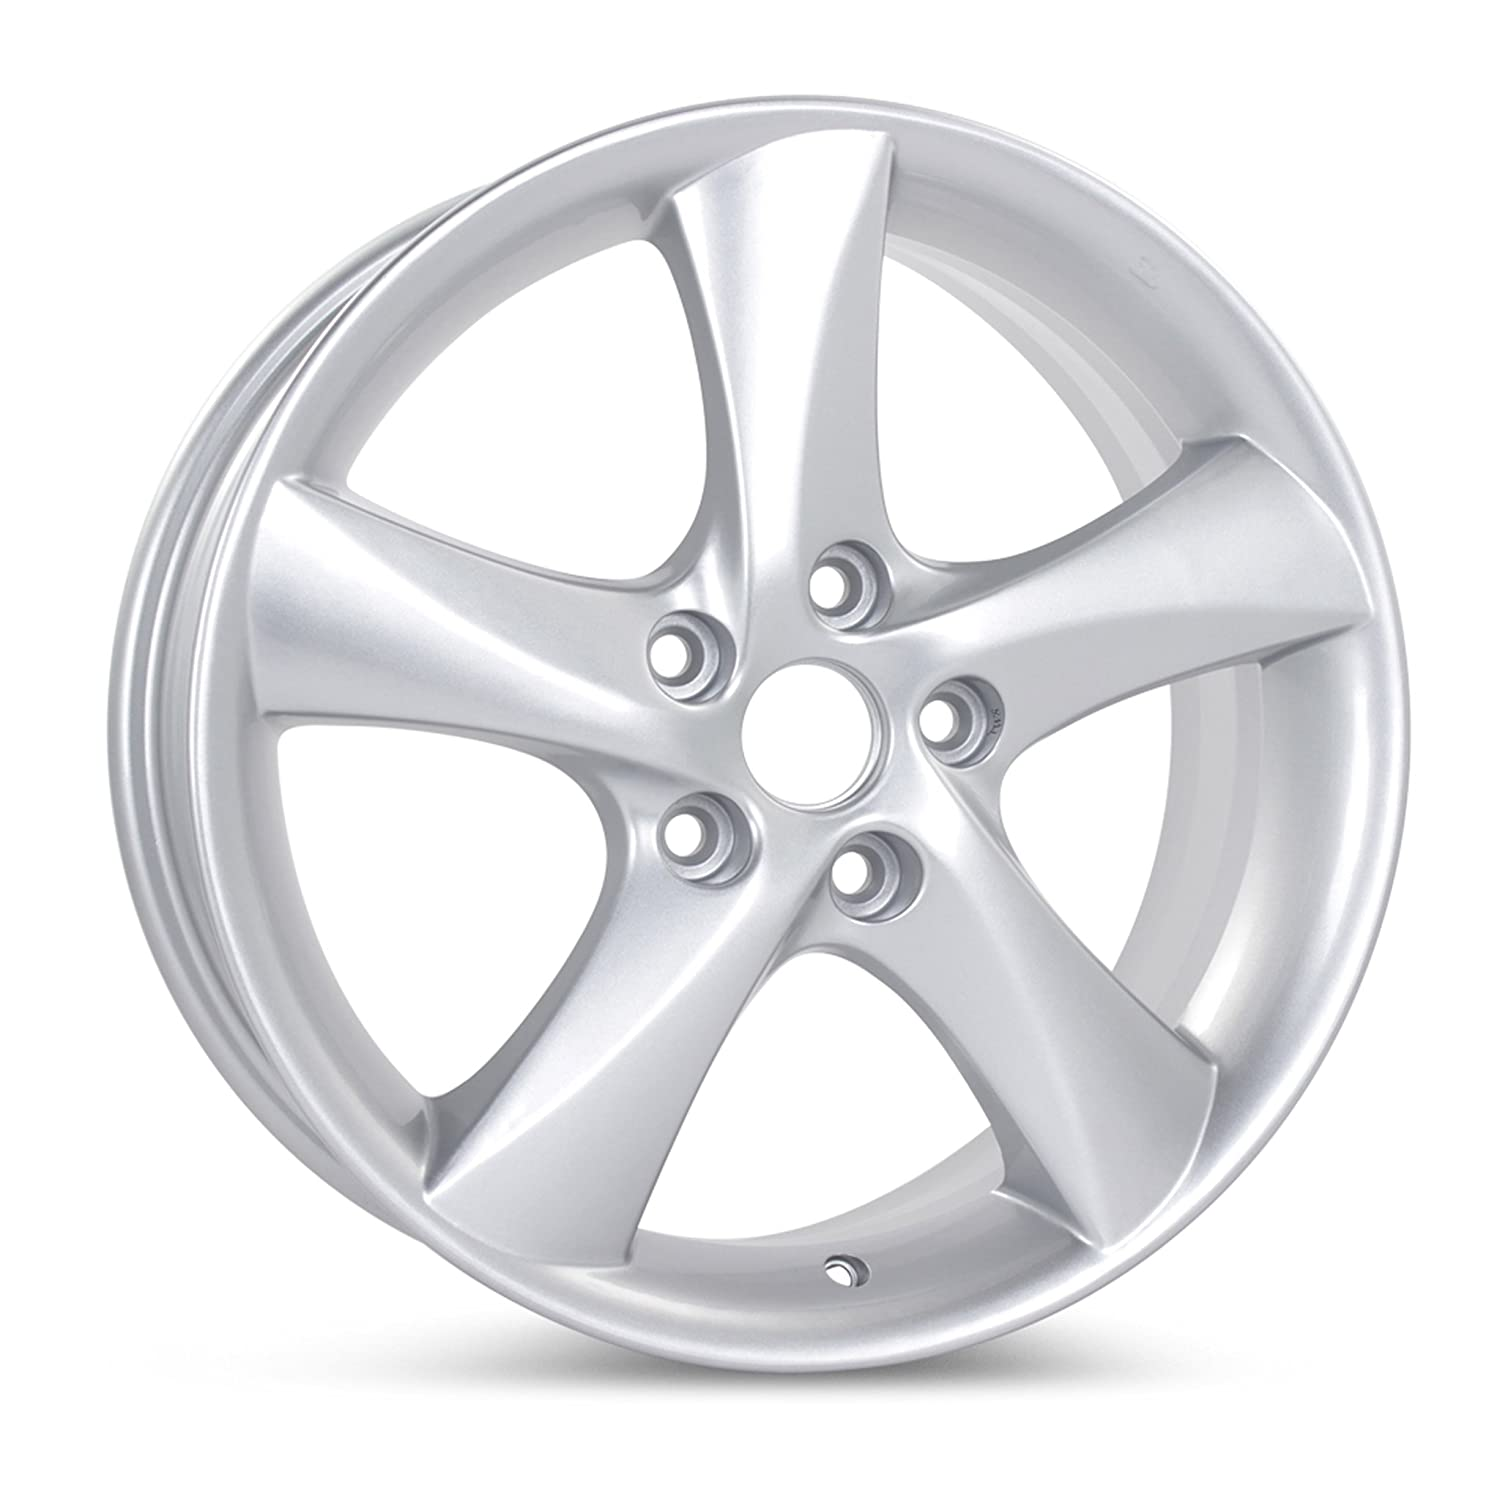 Amazon.com: Wheels - Tires & Wheels: Automotive: Car, Truck & SUV ...